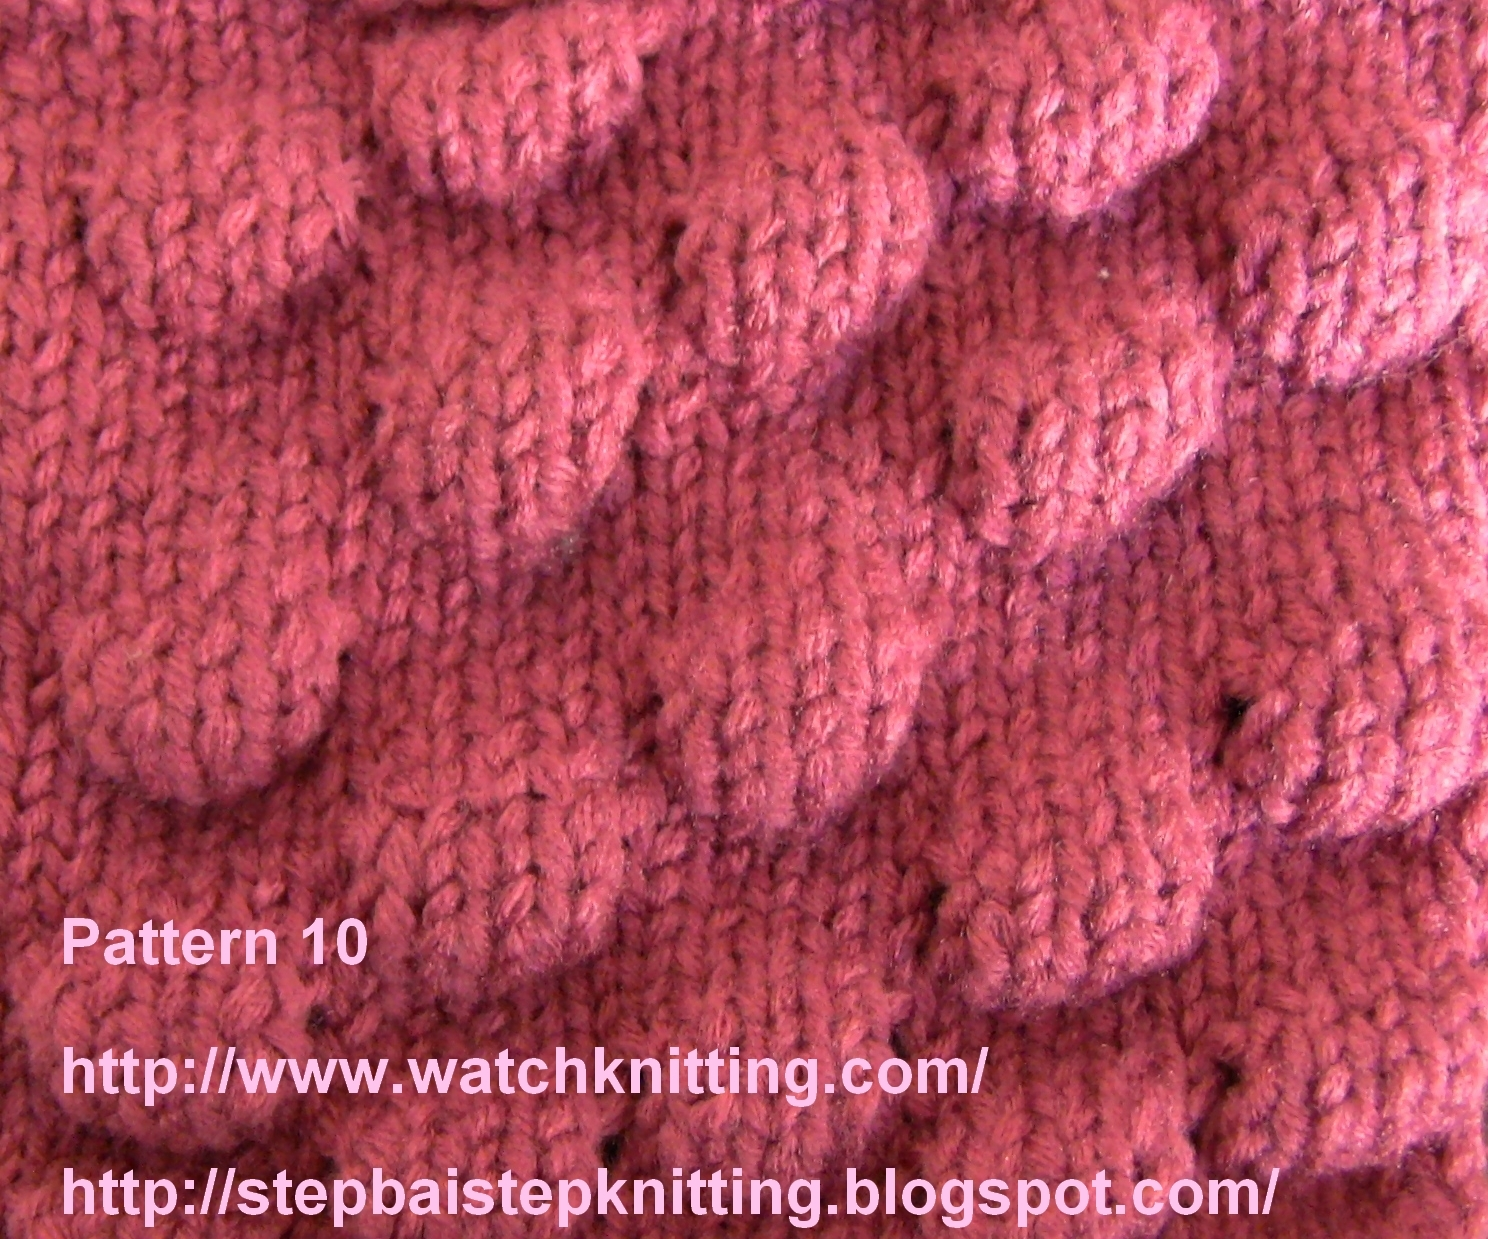 Knitting Pictures Free : How to knit patterns gallery